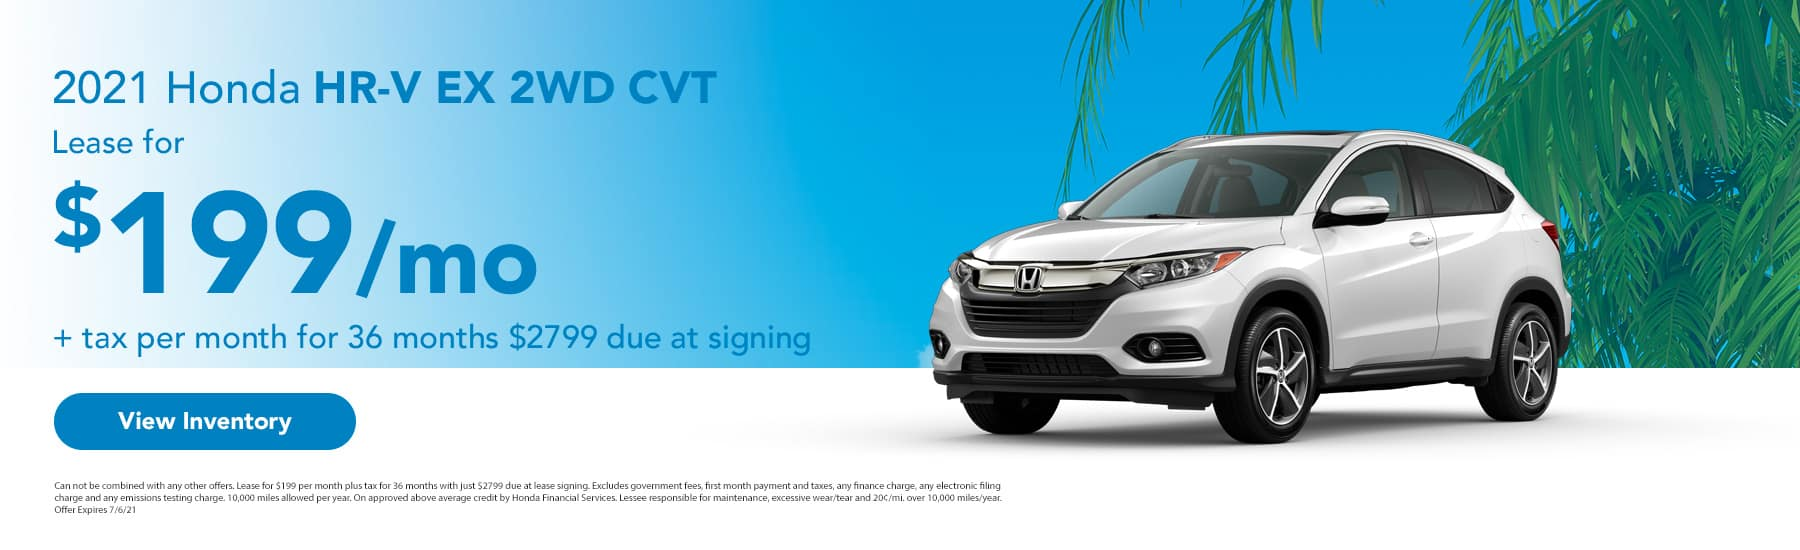 2021 Honda HR-V EX 2WD CVT Lease for $199 + tax per month for 36 month $2799 due at signing